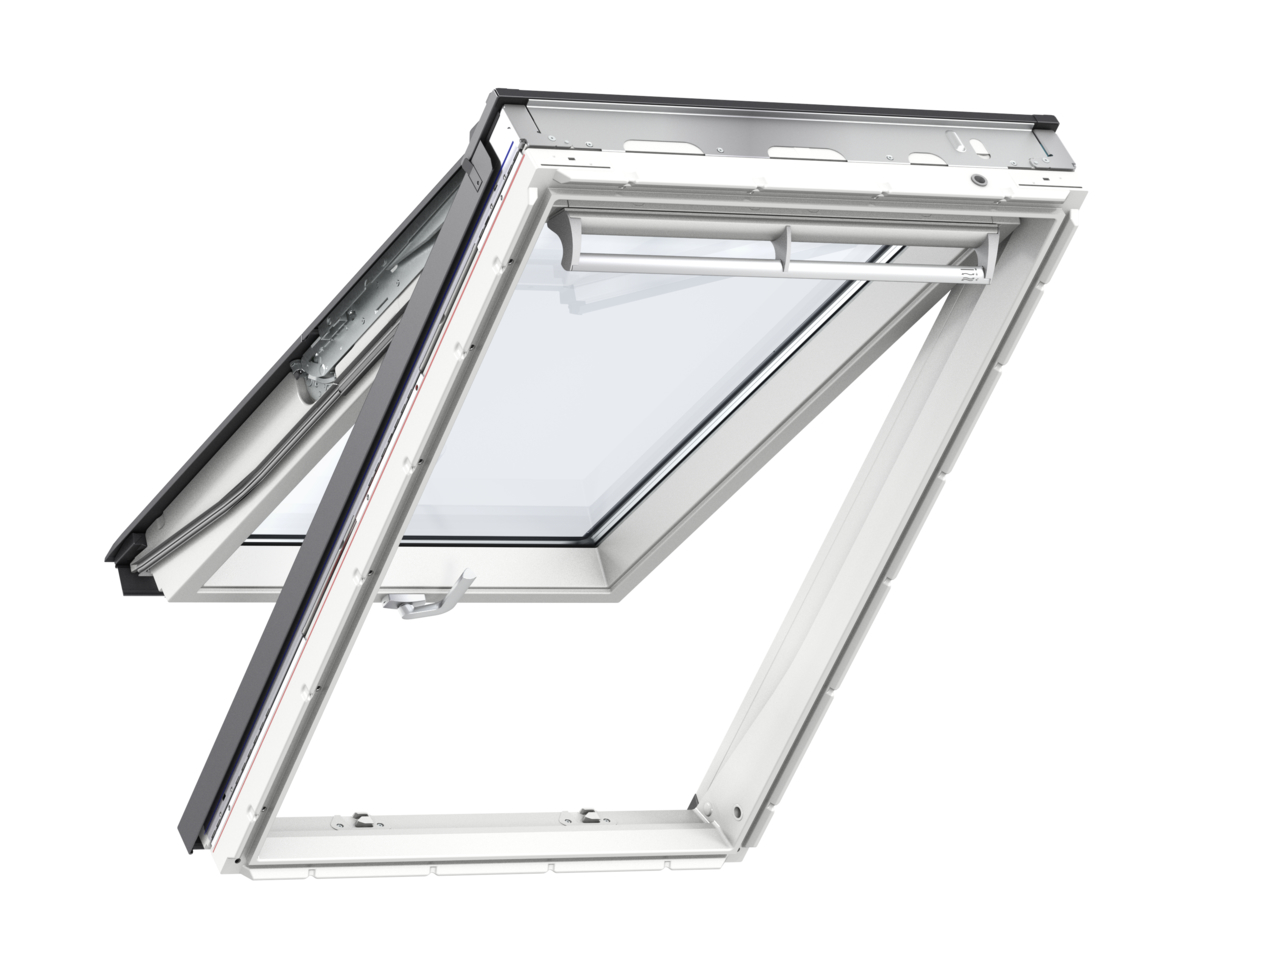 Velux GPU CK04 550 x 980mm Top Hung 66Pane Roof Window - White Polyurethane